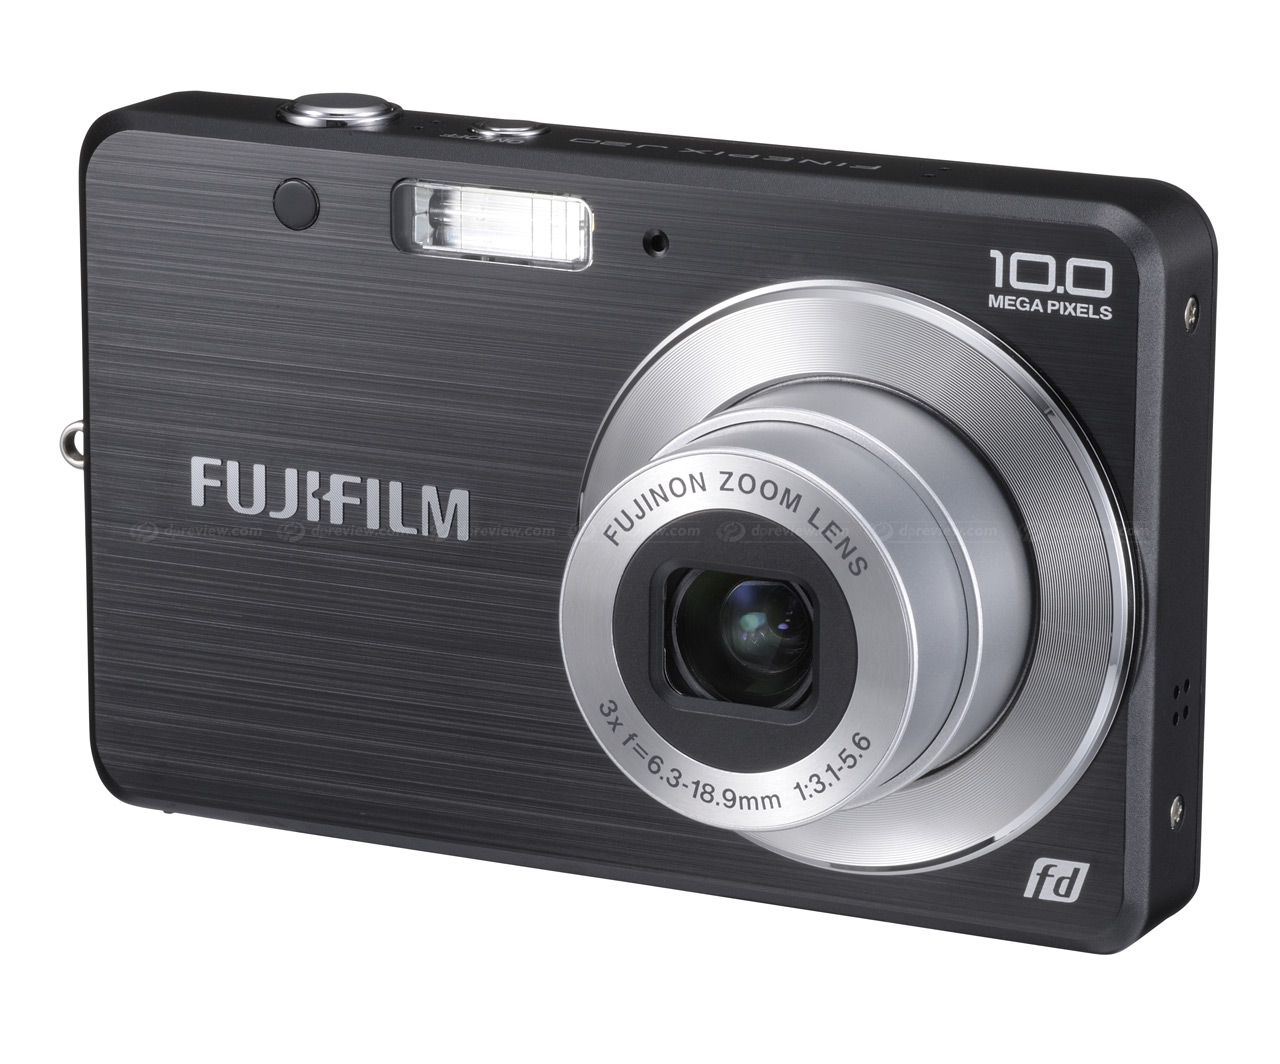 Fujifilm releases FinePix J20 entry-level compact camera: Digital ...